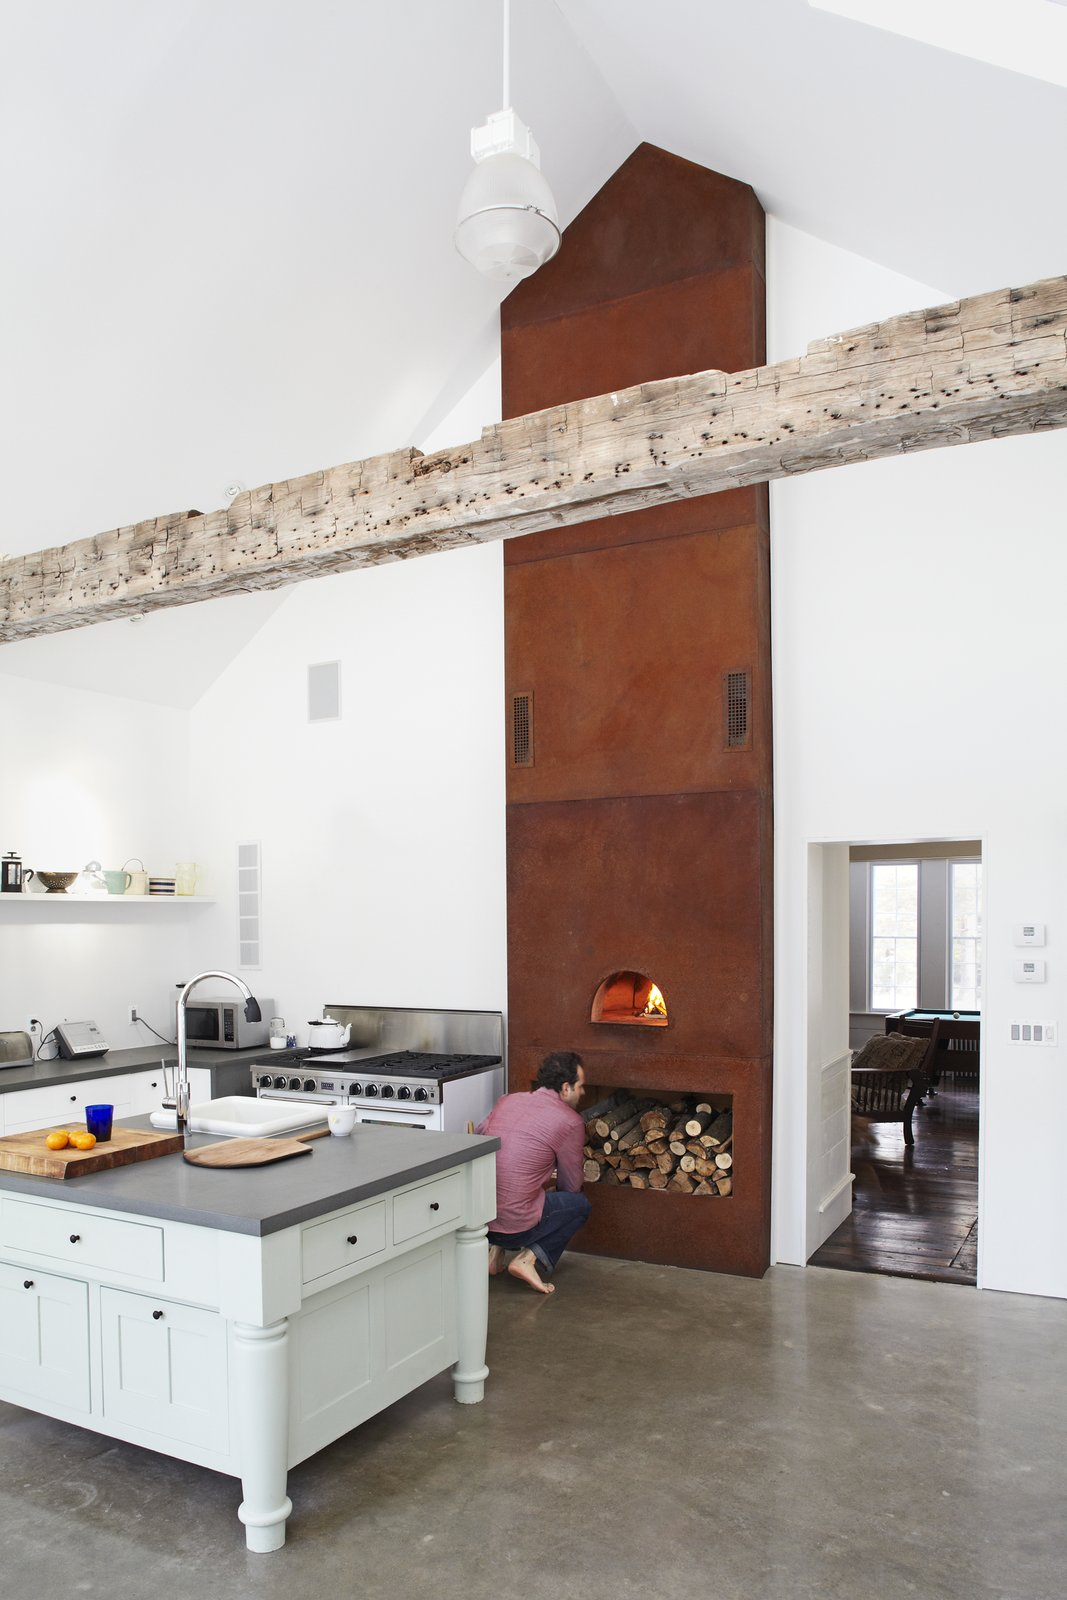 Cor-Ten steel panel tower, acid-oxodized and weathered over three years, houses a wood-burning pizza oven at its base.